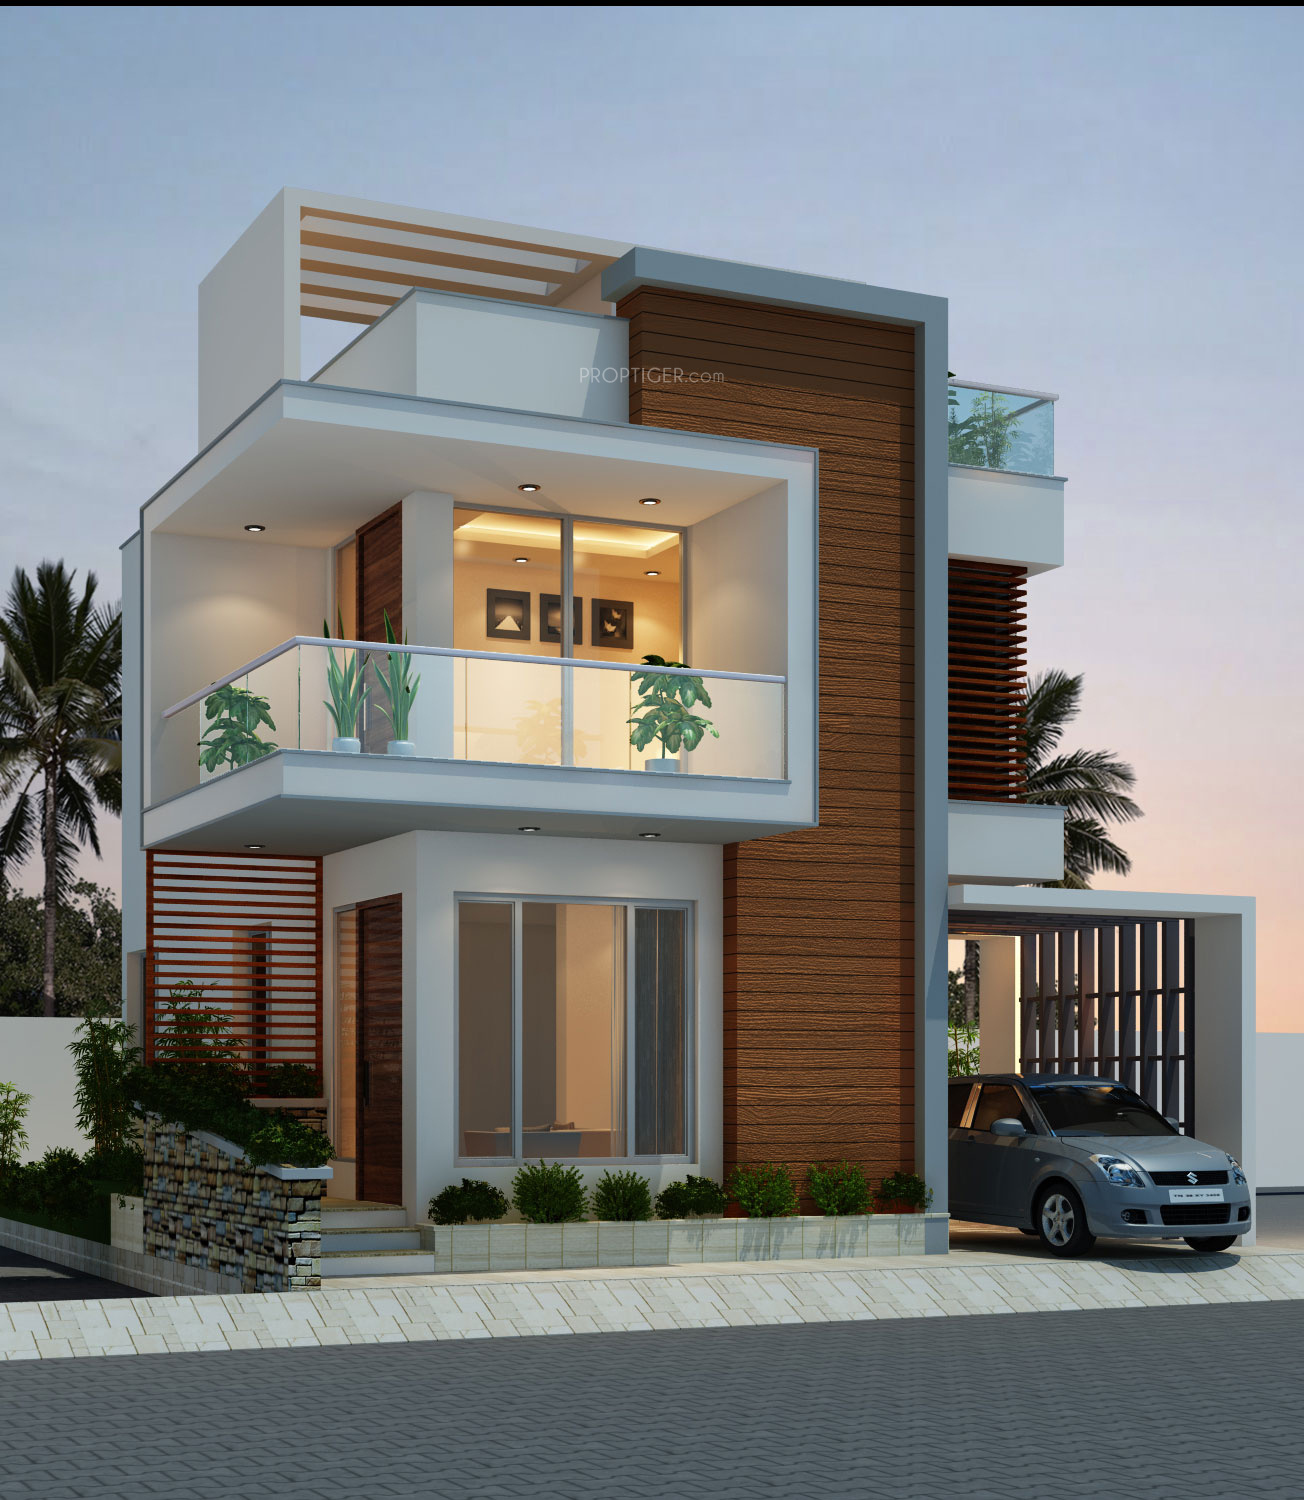 headway fortune residency villa elevation 621167